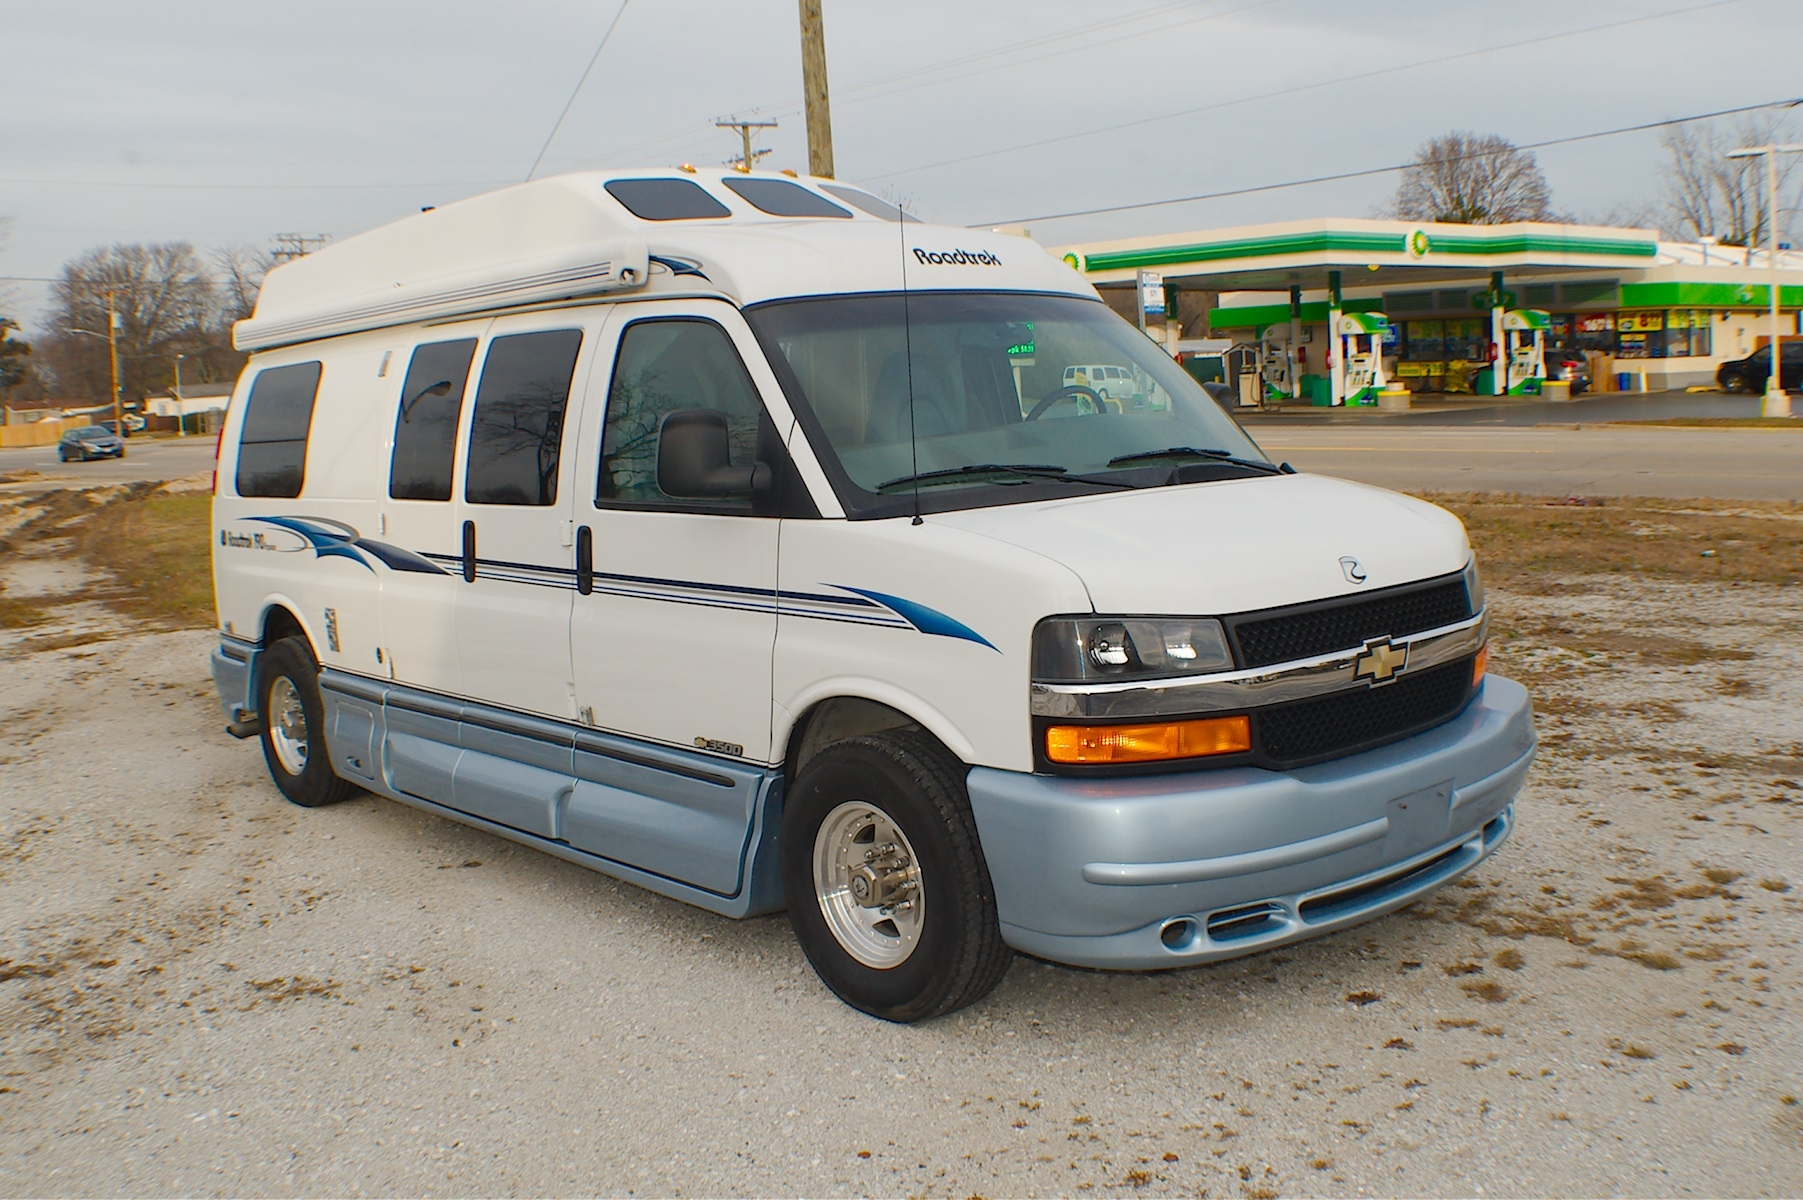 2004 Chevy RoadTrek 190 Popular Class B Used RV Sale Antioch Zion Waukegan Lake County Illinois